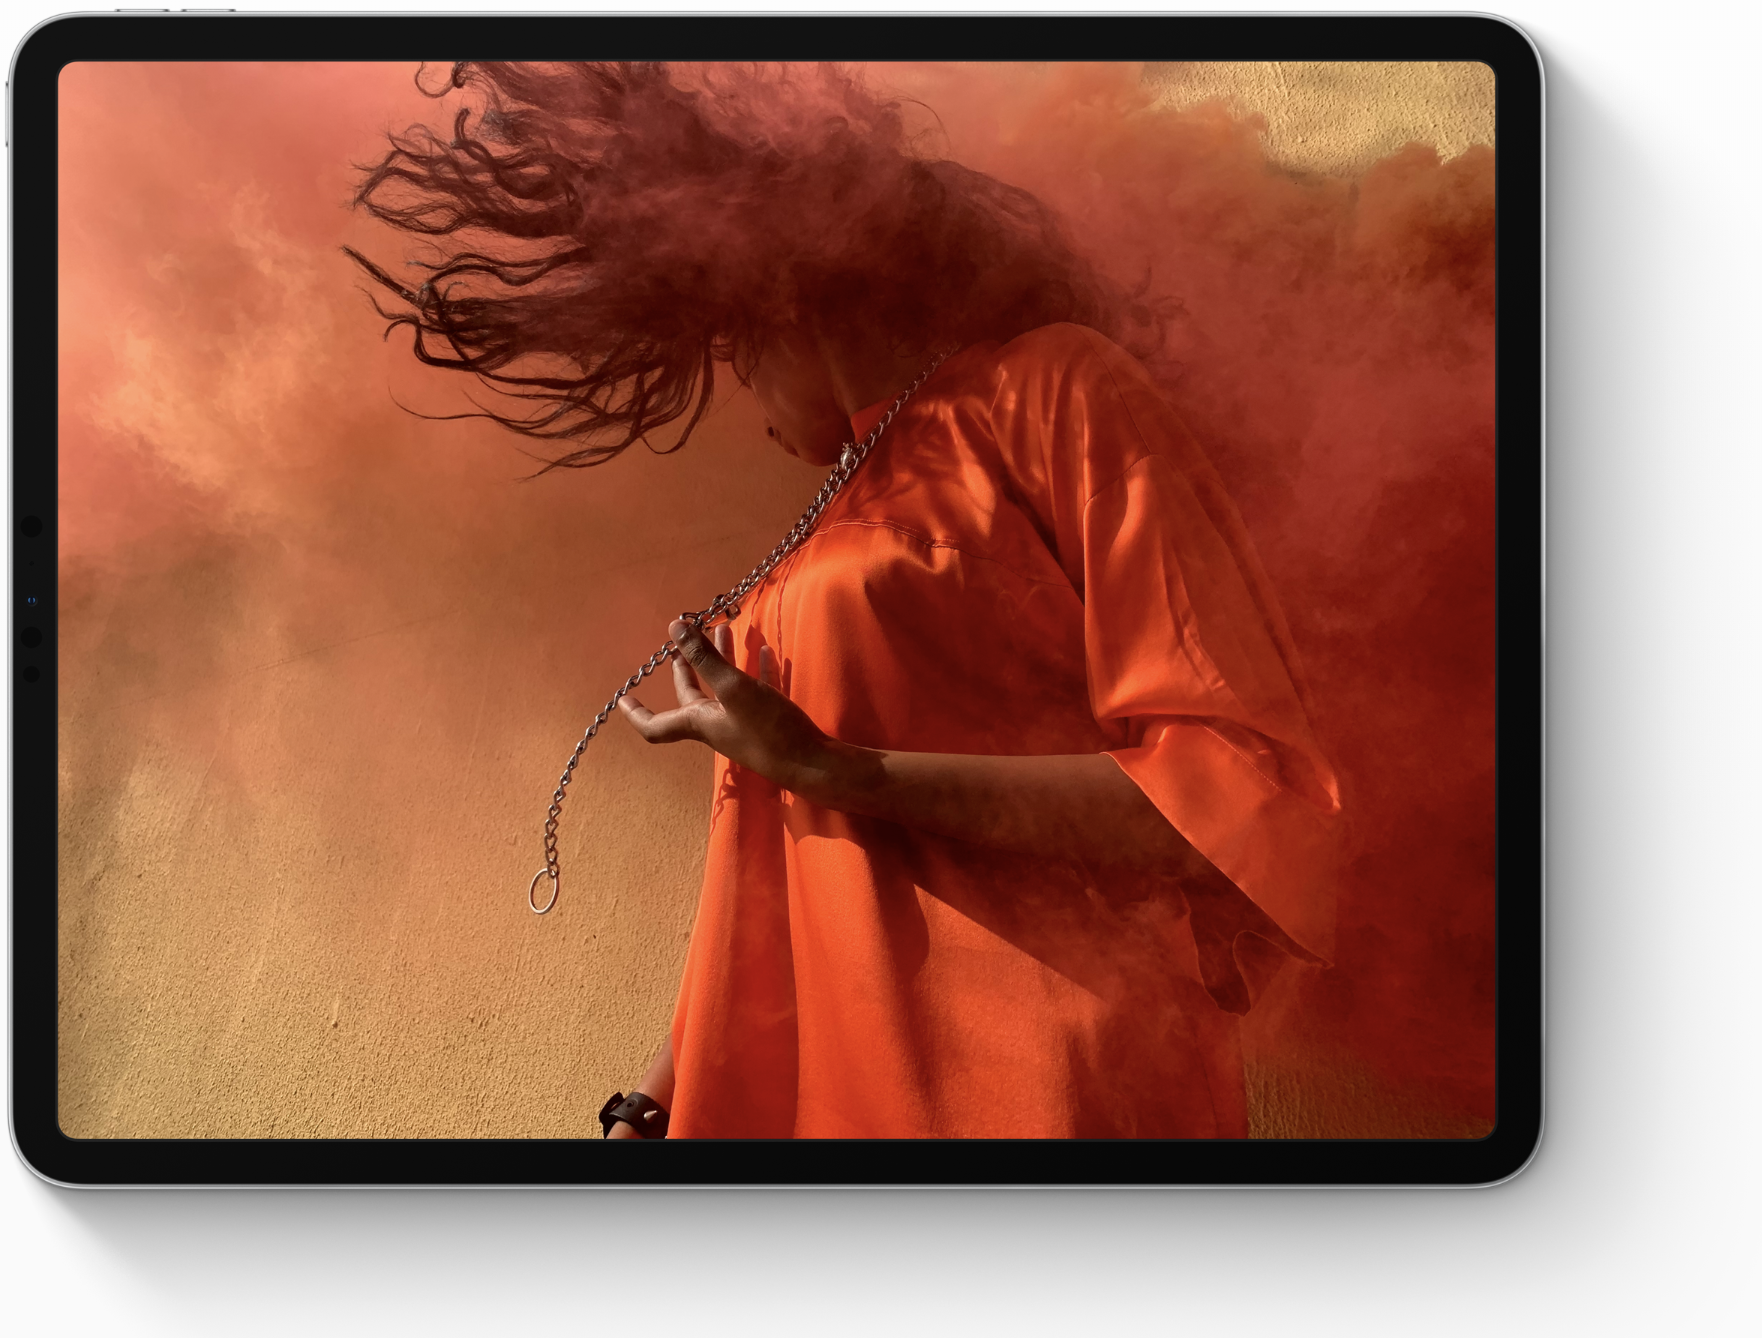 the screen of the brand new iPad pro